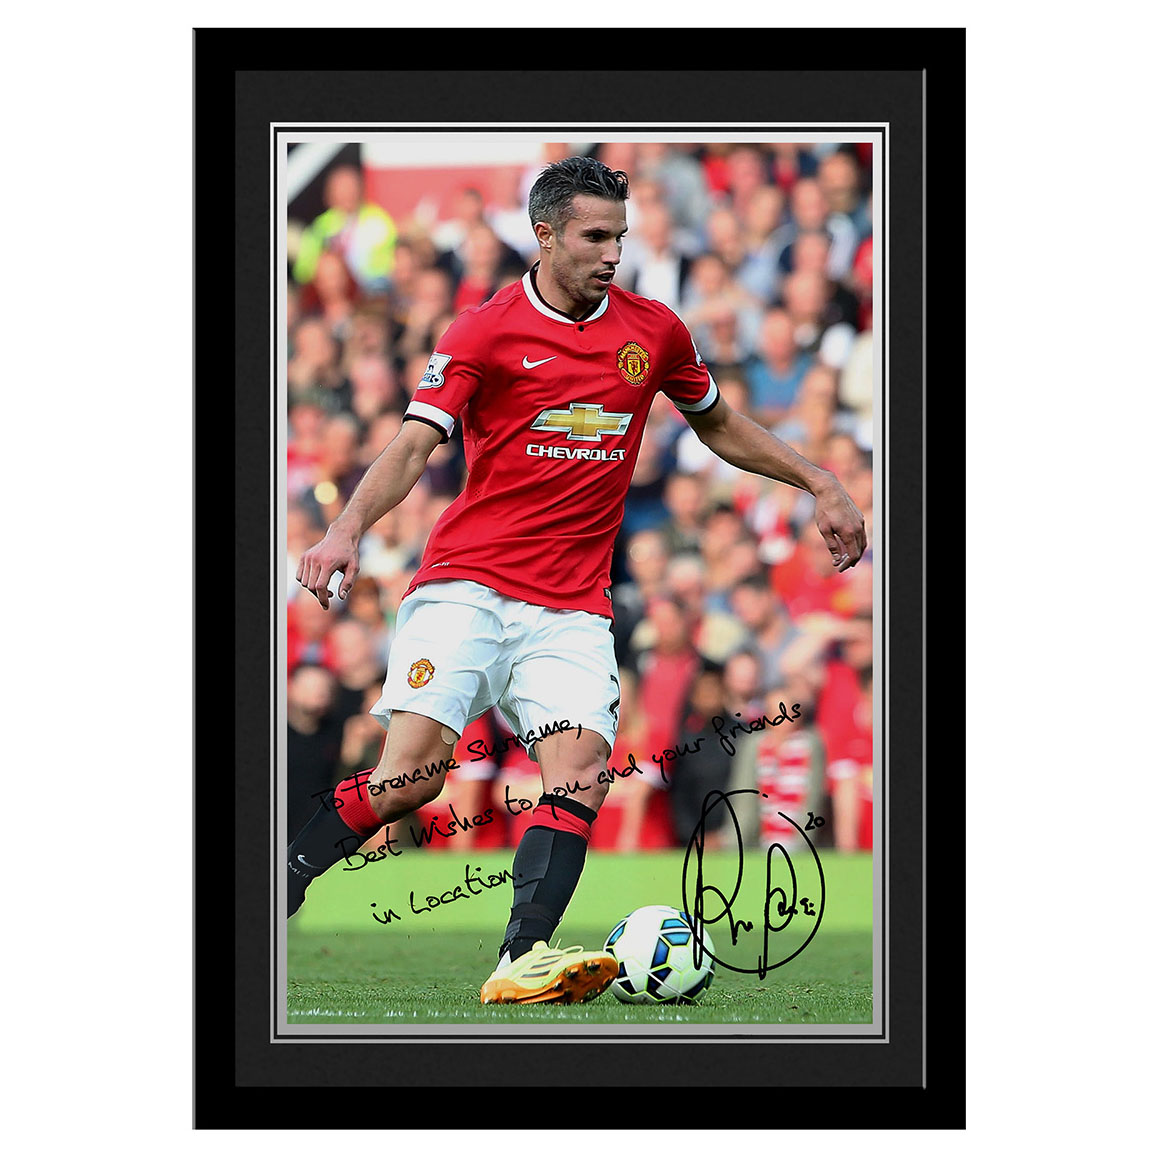 Manchester United Personalised Signature Photo Framed - Van Persie